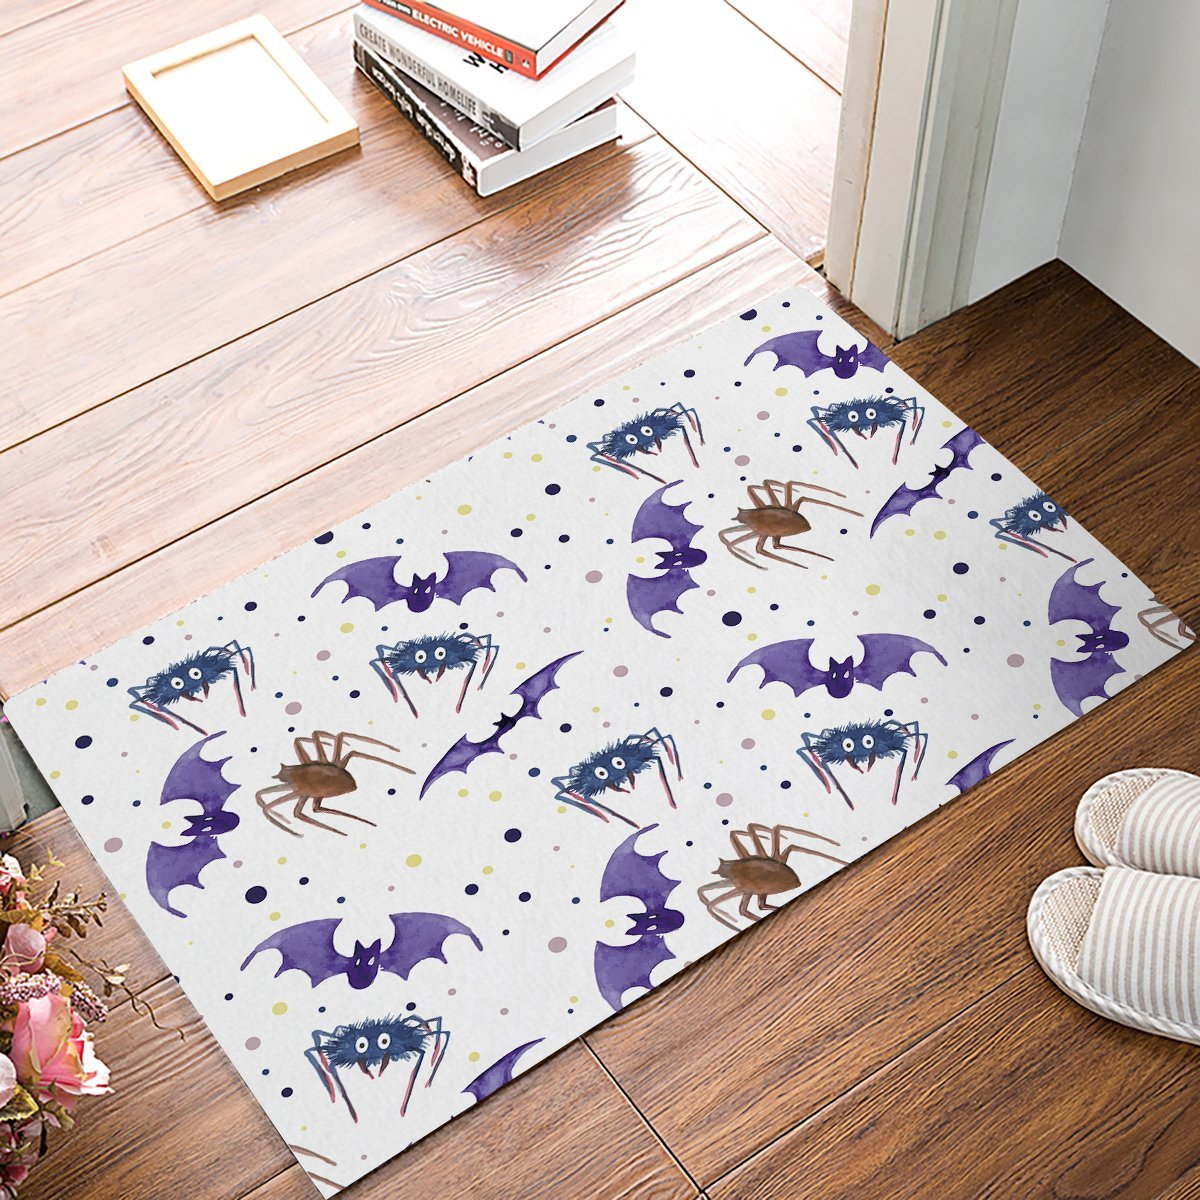 Dog Themed Outdoor Rugs: Animal Theme Scary Purple Bat Spider Door Mats Floor Bath